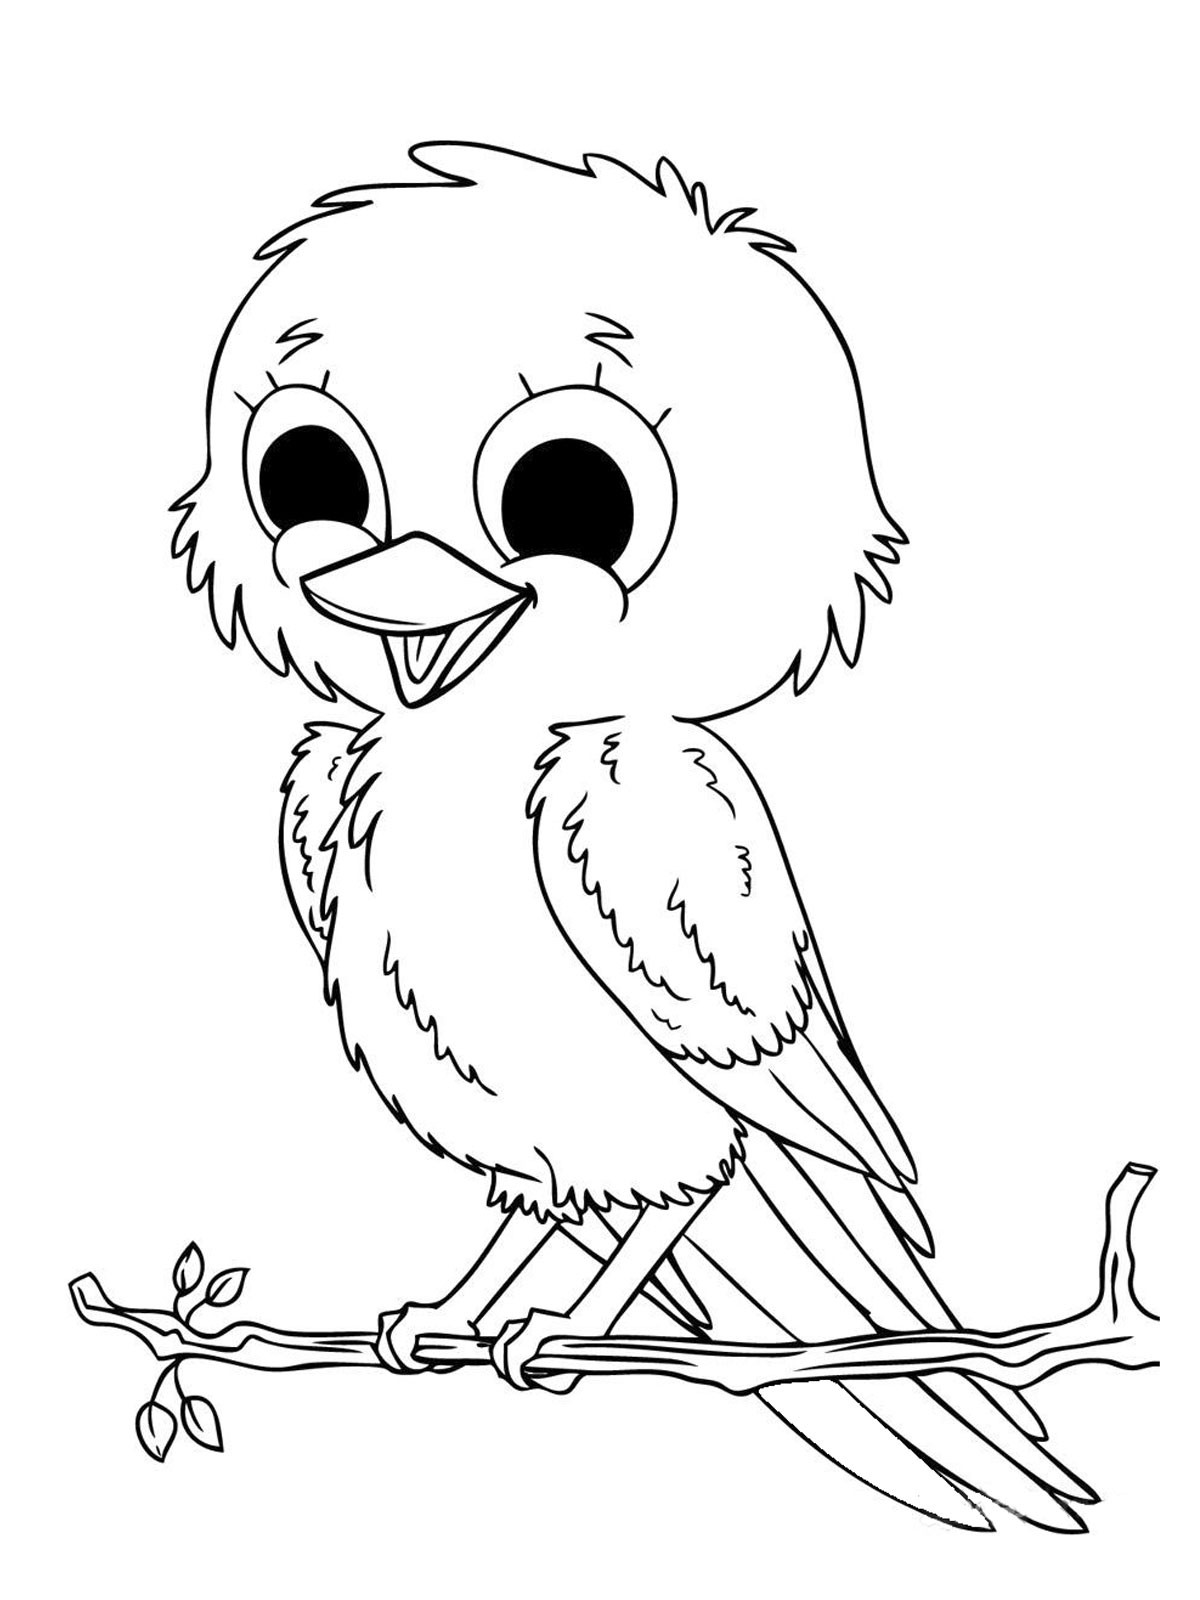 Cute Coloring Sheets For Girls  Free Coloring Pages For Girls Cute Image 5 Gianfreda